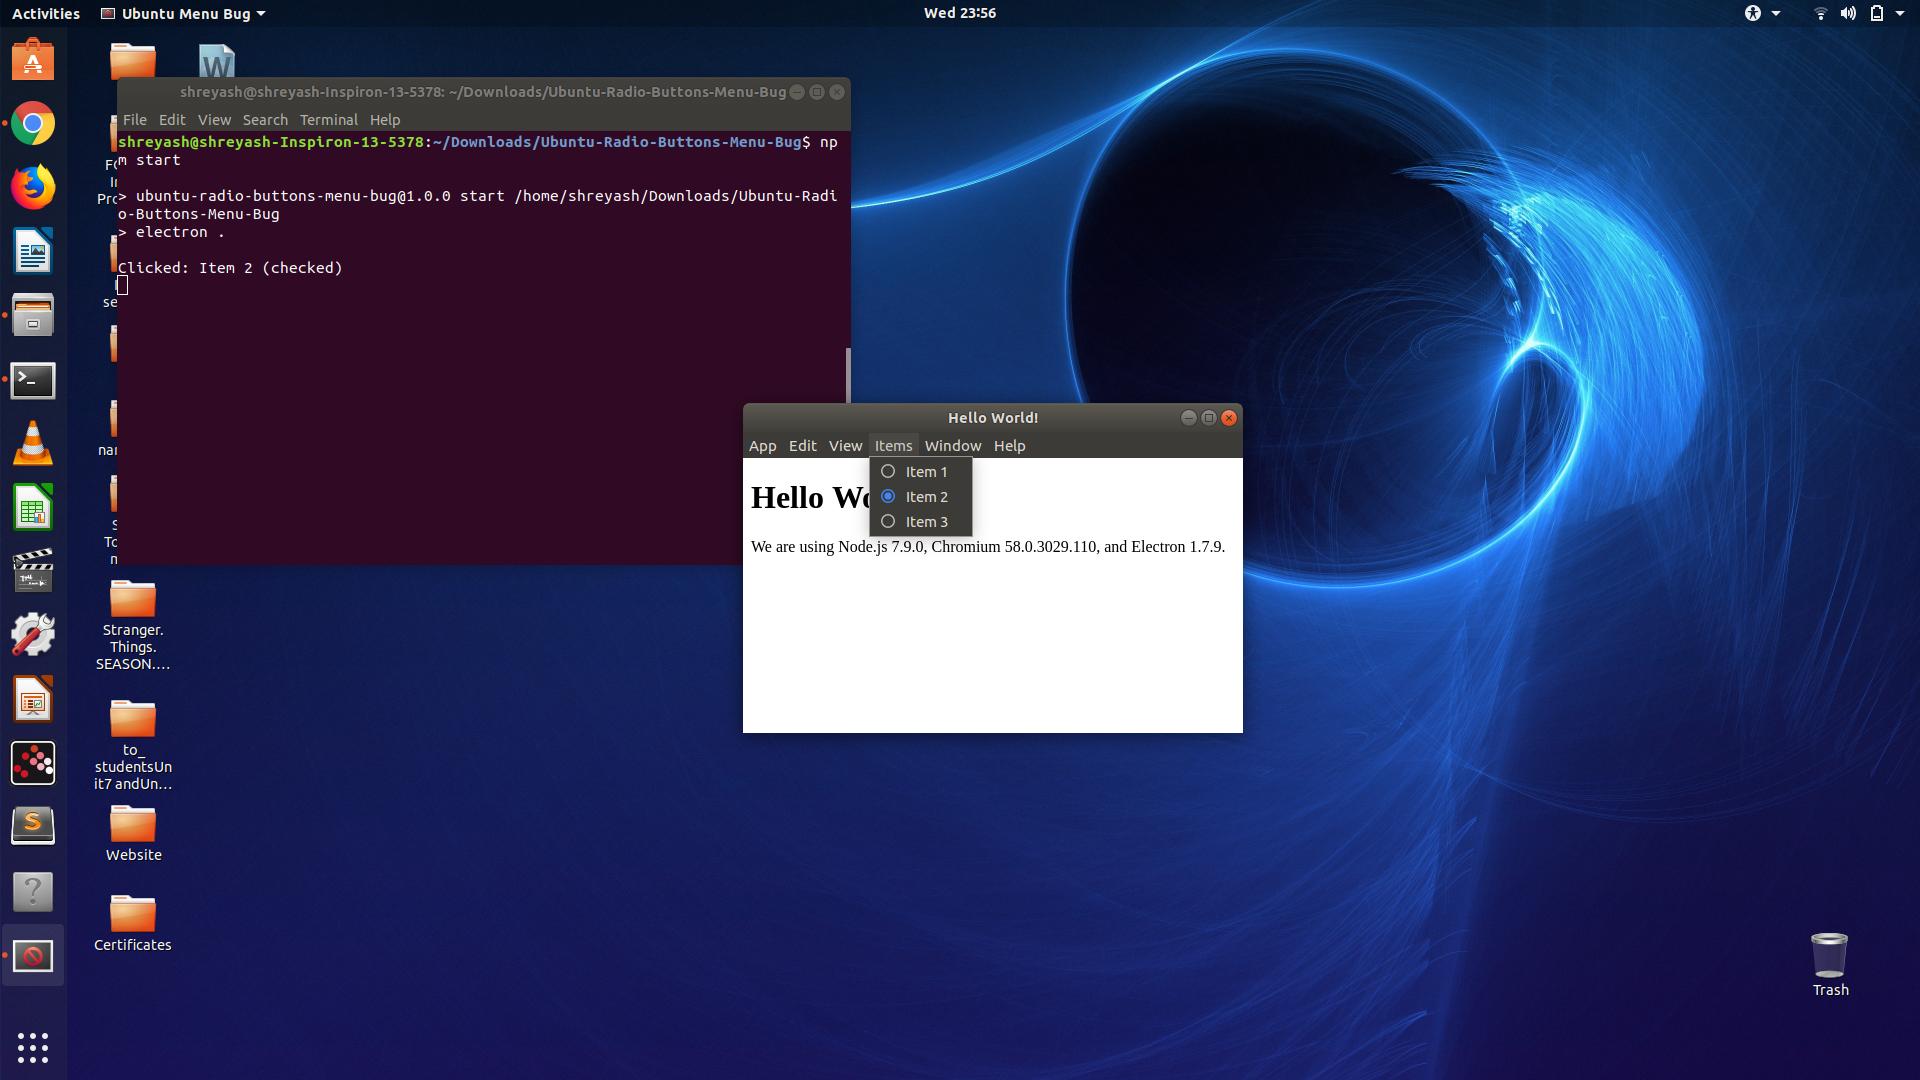 In Ubuntu, a radio-buttons menu is never updated after